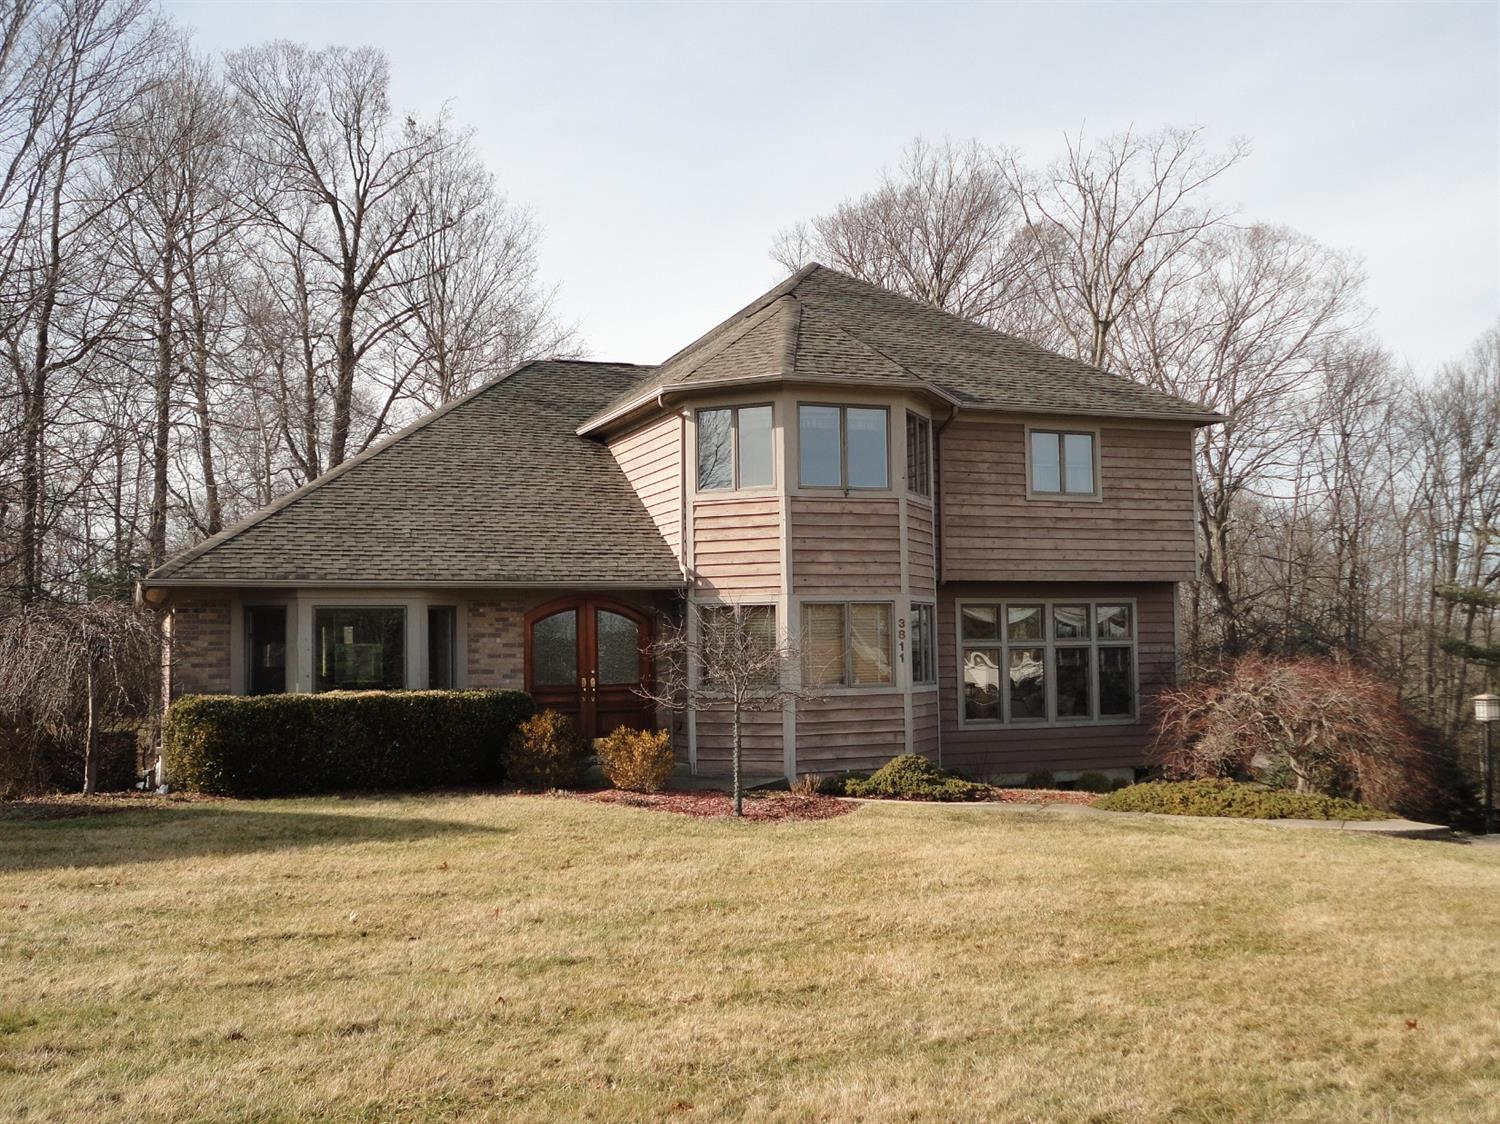 3811 Sunburst Ridge Ln Bridgetown, OH